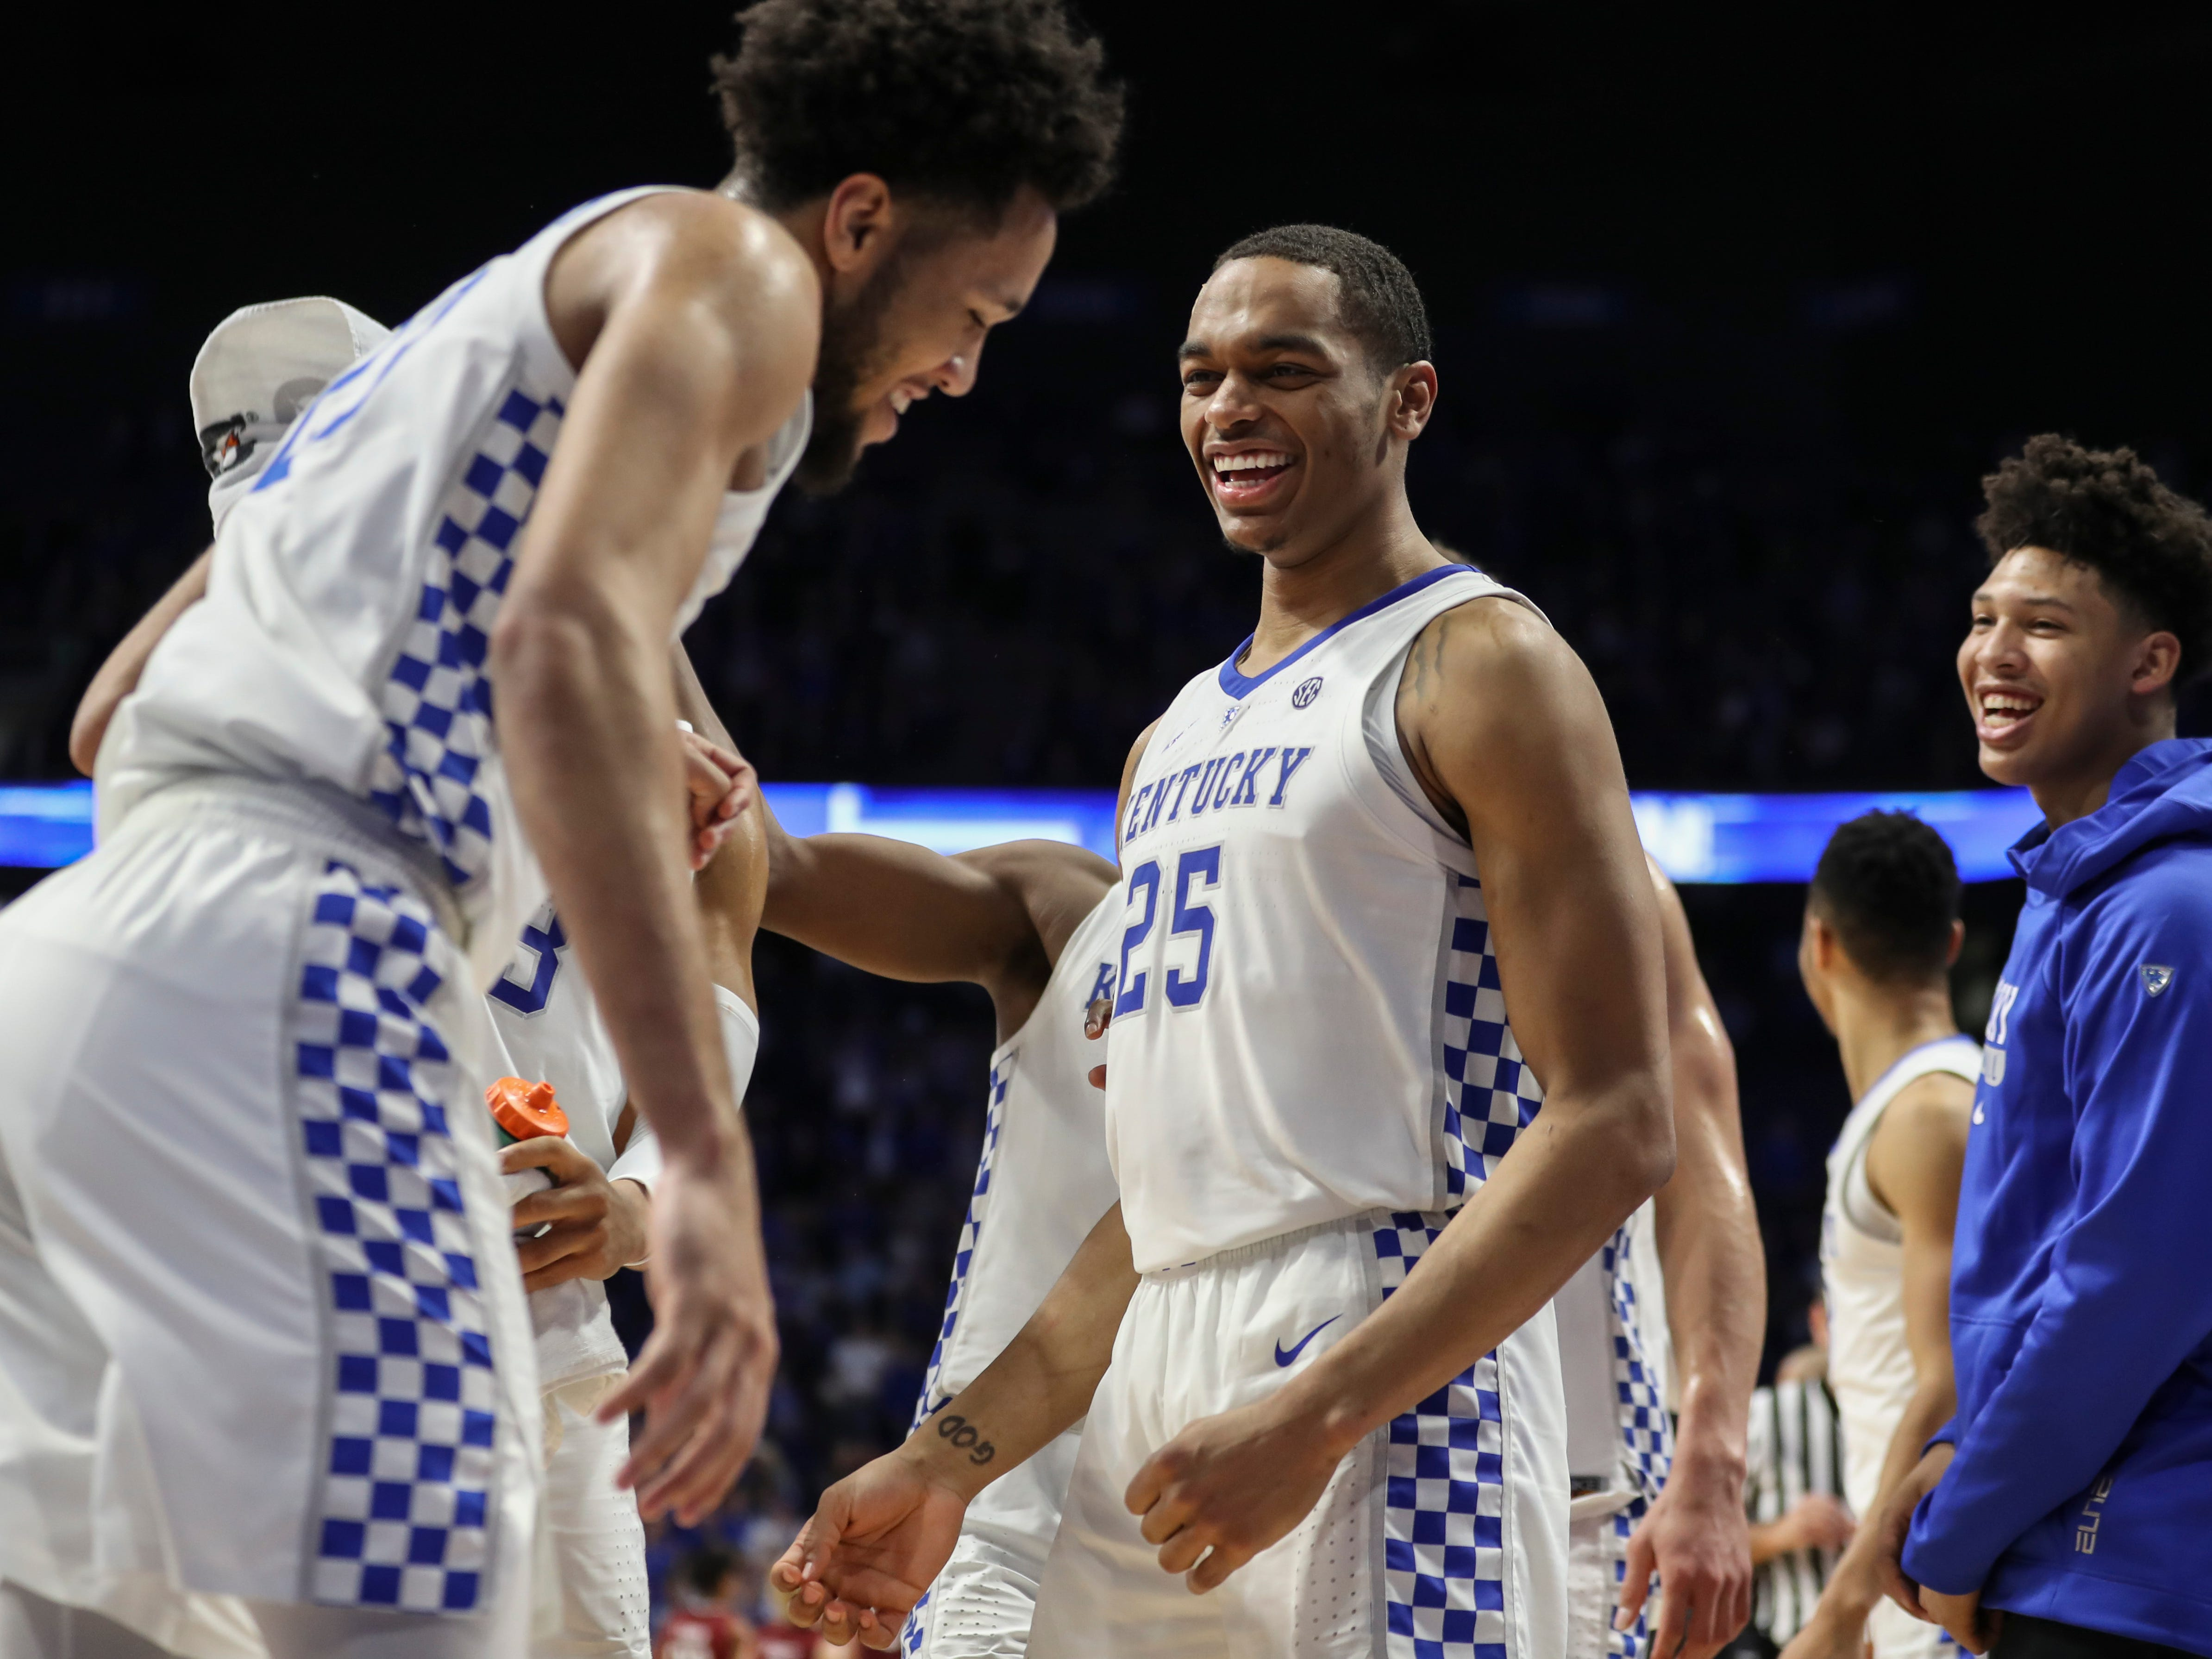 Kentucky's PJ Washington Jr smiles at EJ Montgomery at the end of the game as the Wildcats rolled past South Carolina. Feb. 5, 2019